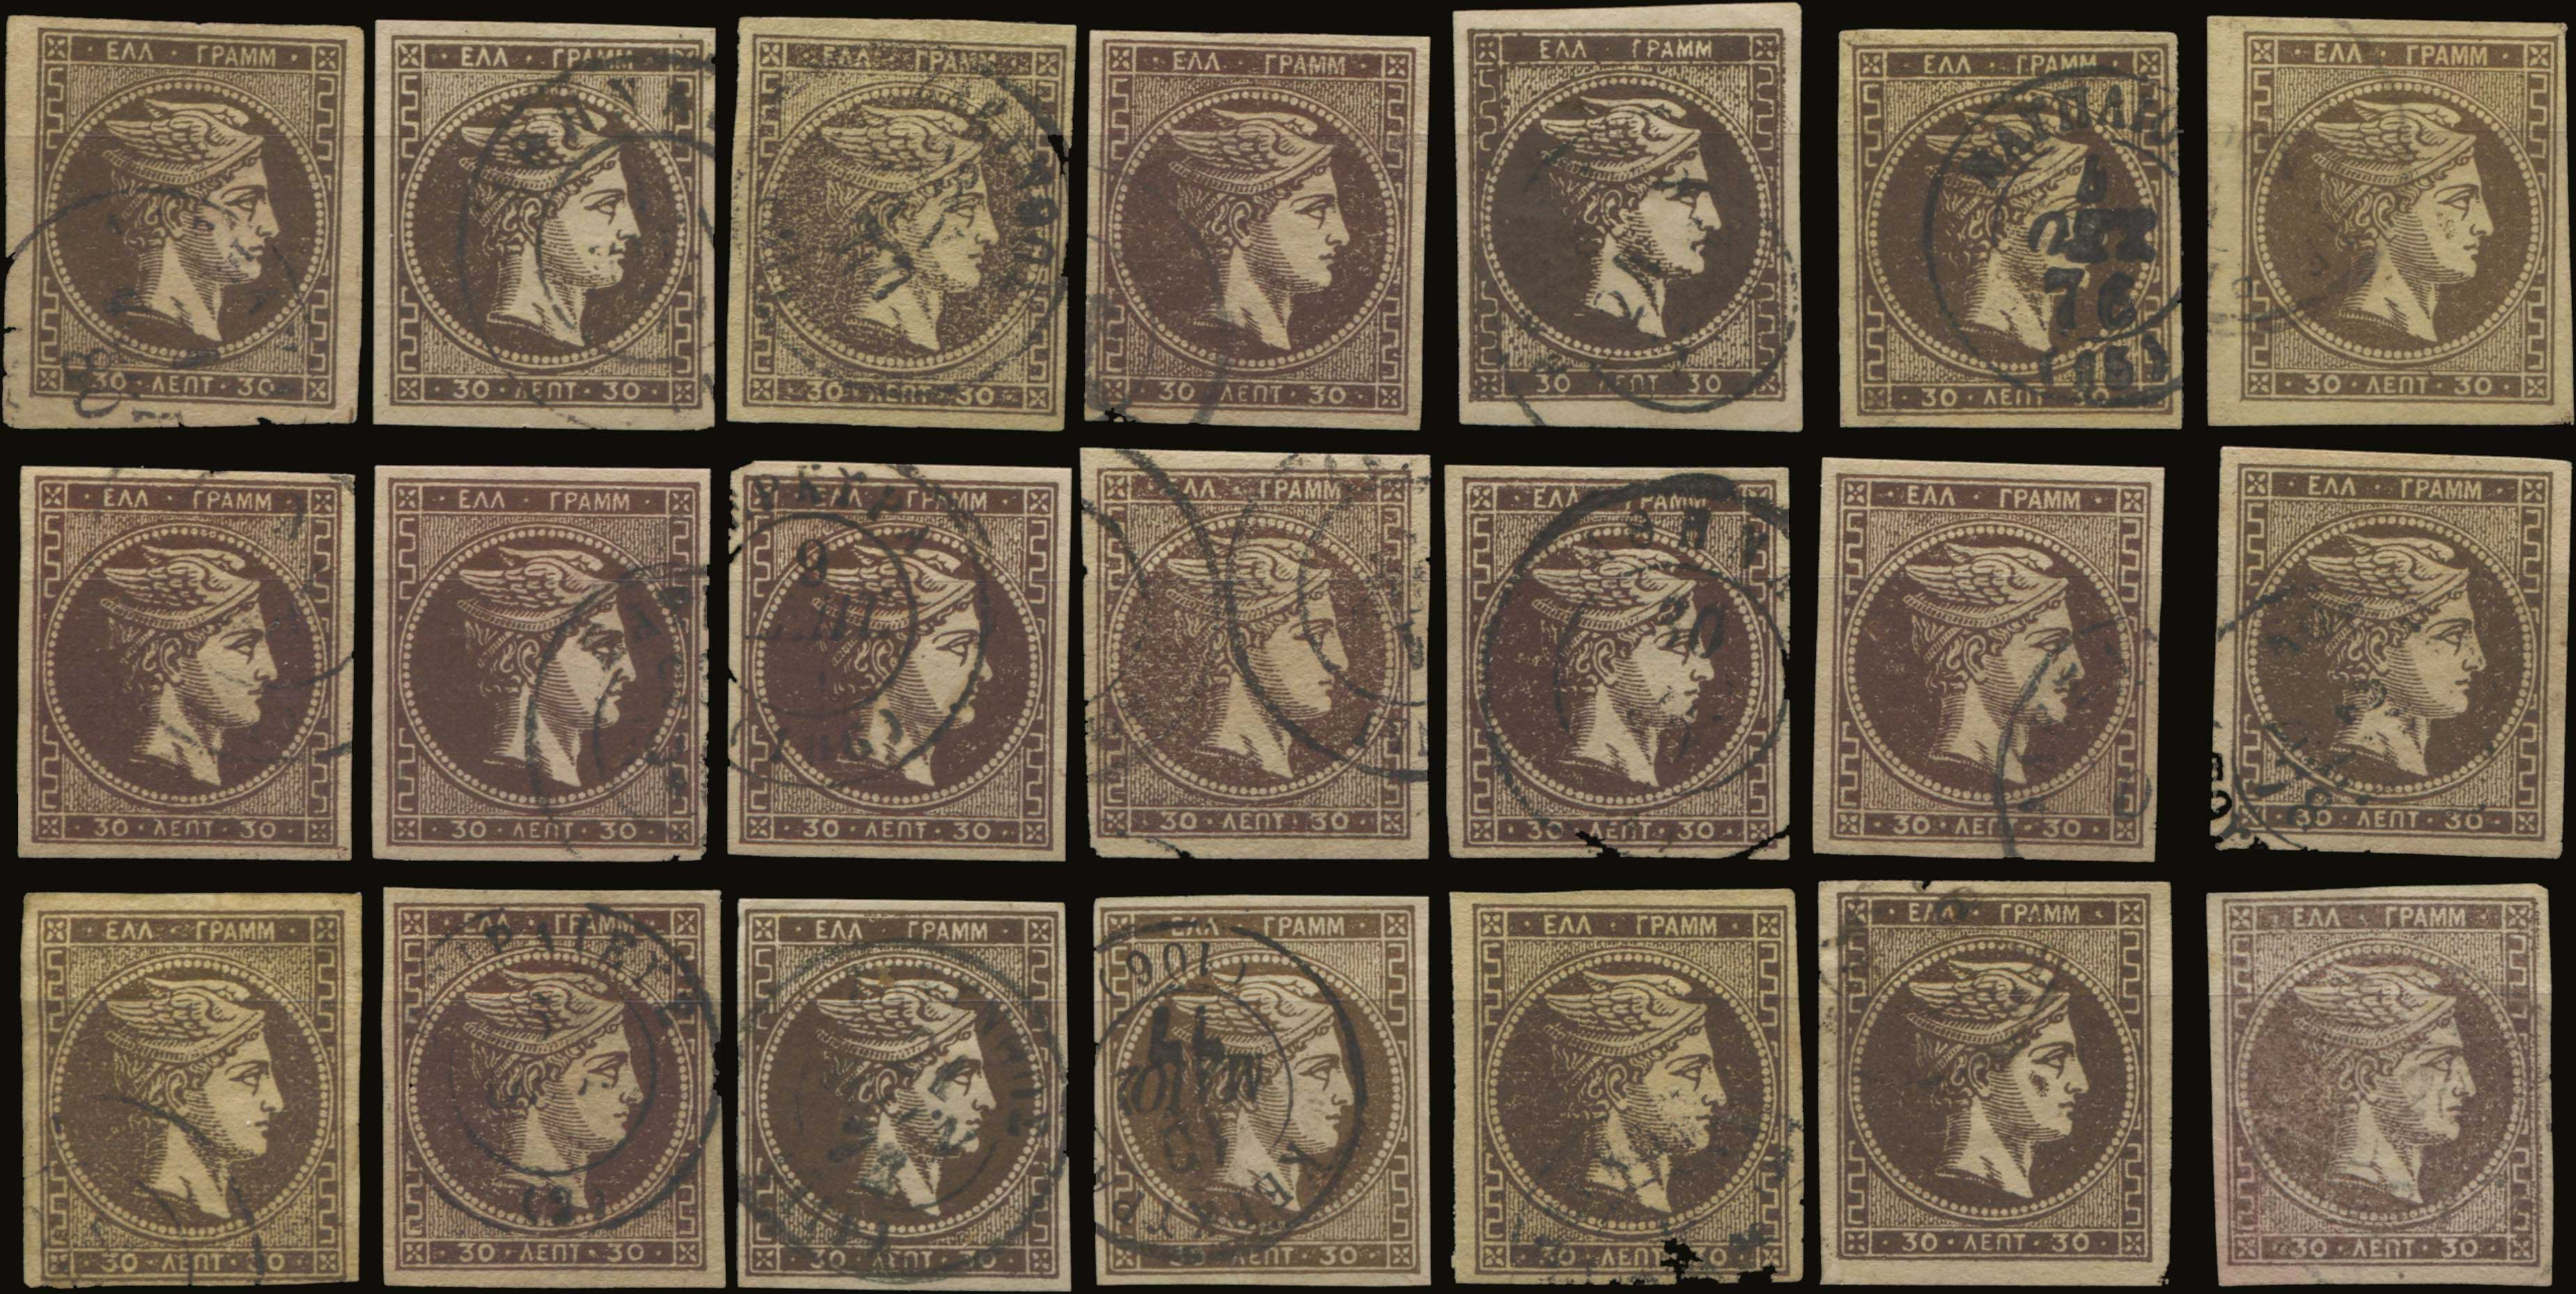 Lot 181 - -  LARGE HERMES HEAD 1876/77 athens printing -  A. Karamitsos Public Auction 648 General Stamp Sale